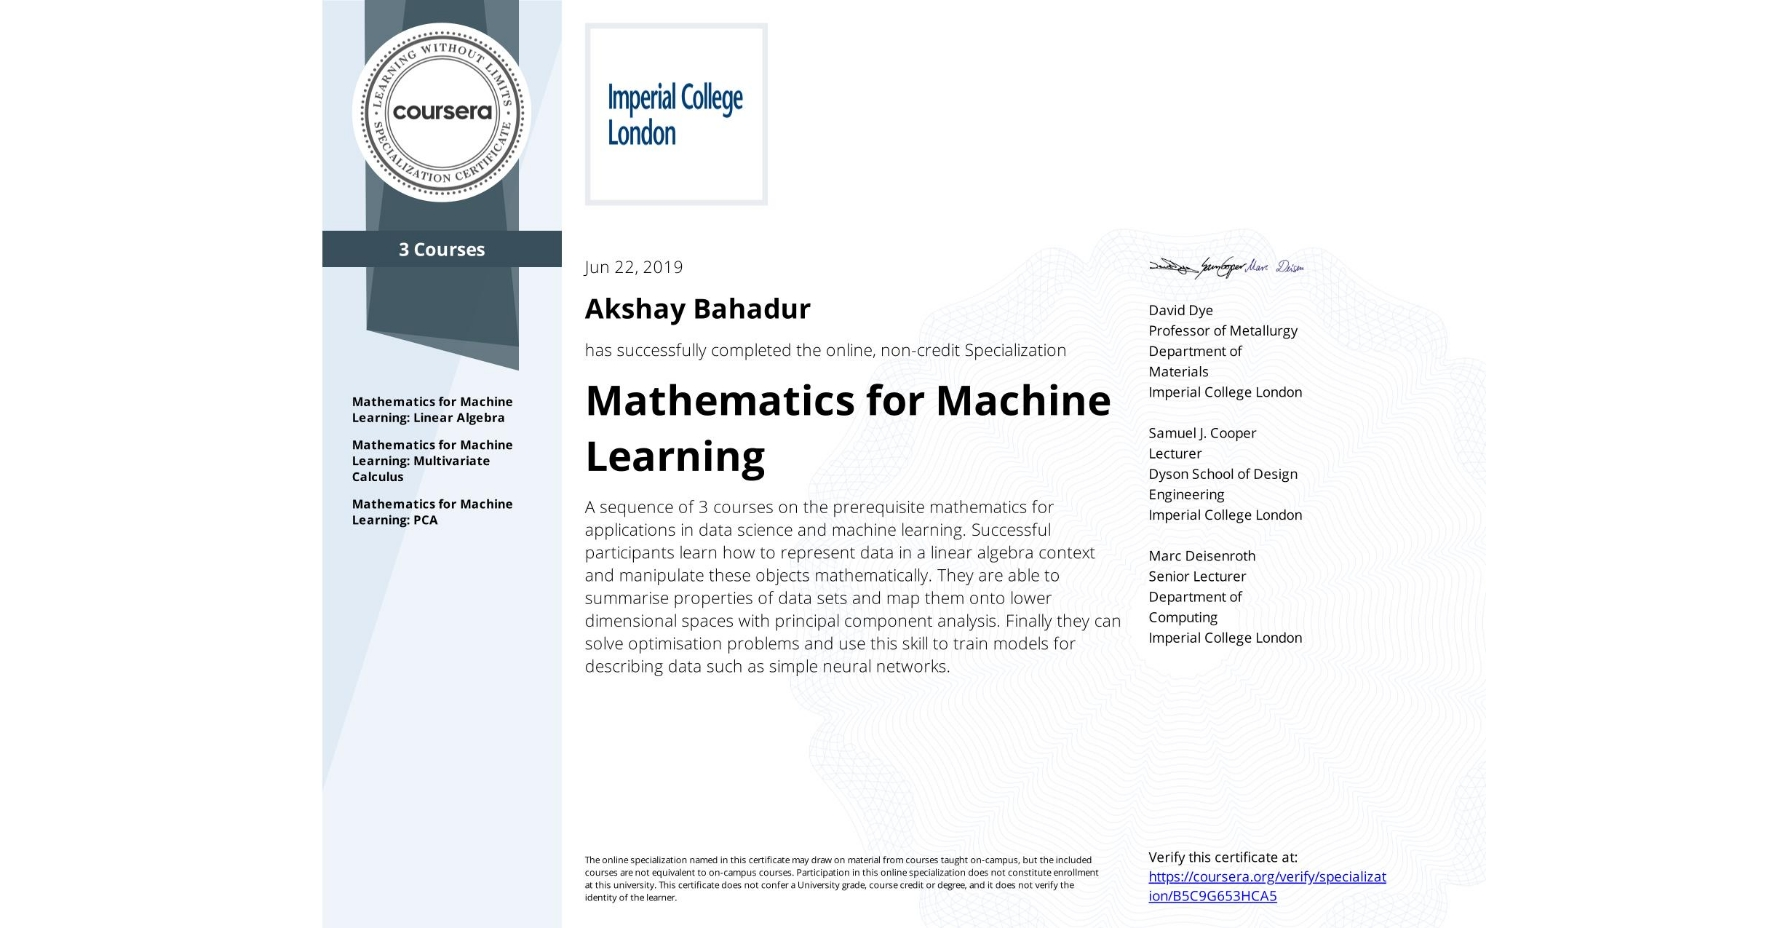 View certificate for Akshay Bahadur, Mathematics for Machine Learning, offered through Coursera. A sequence of 3 courses on the prerequisite mathematics for applications in data science and machine learning.   Successful participants learn how to represent data in a linear algebra context and manipulate these objects mathematically. They are able to summarise properties of data sets and map them onto lower dimensional spaces with principal component analysis. Finally they can solve optimisation problems and use this skill to train models for describing data such as simple neural networks.